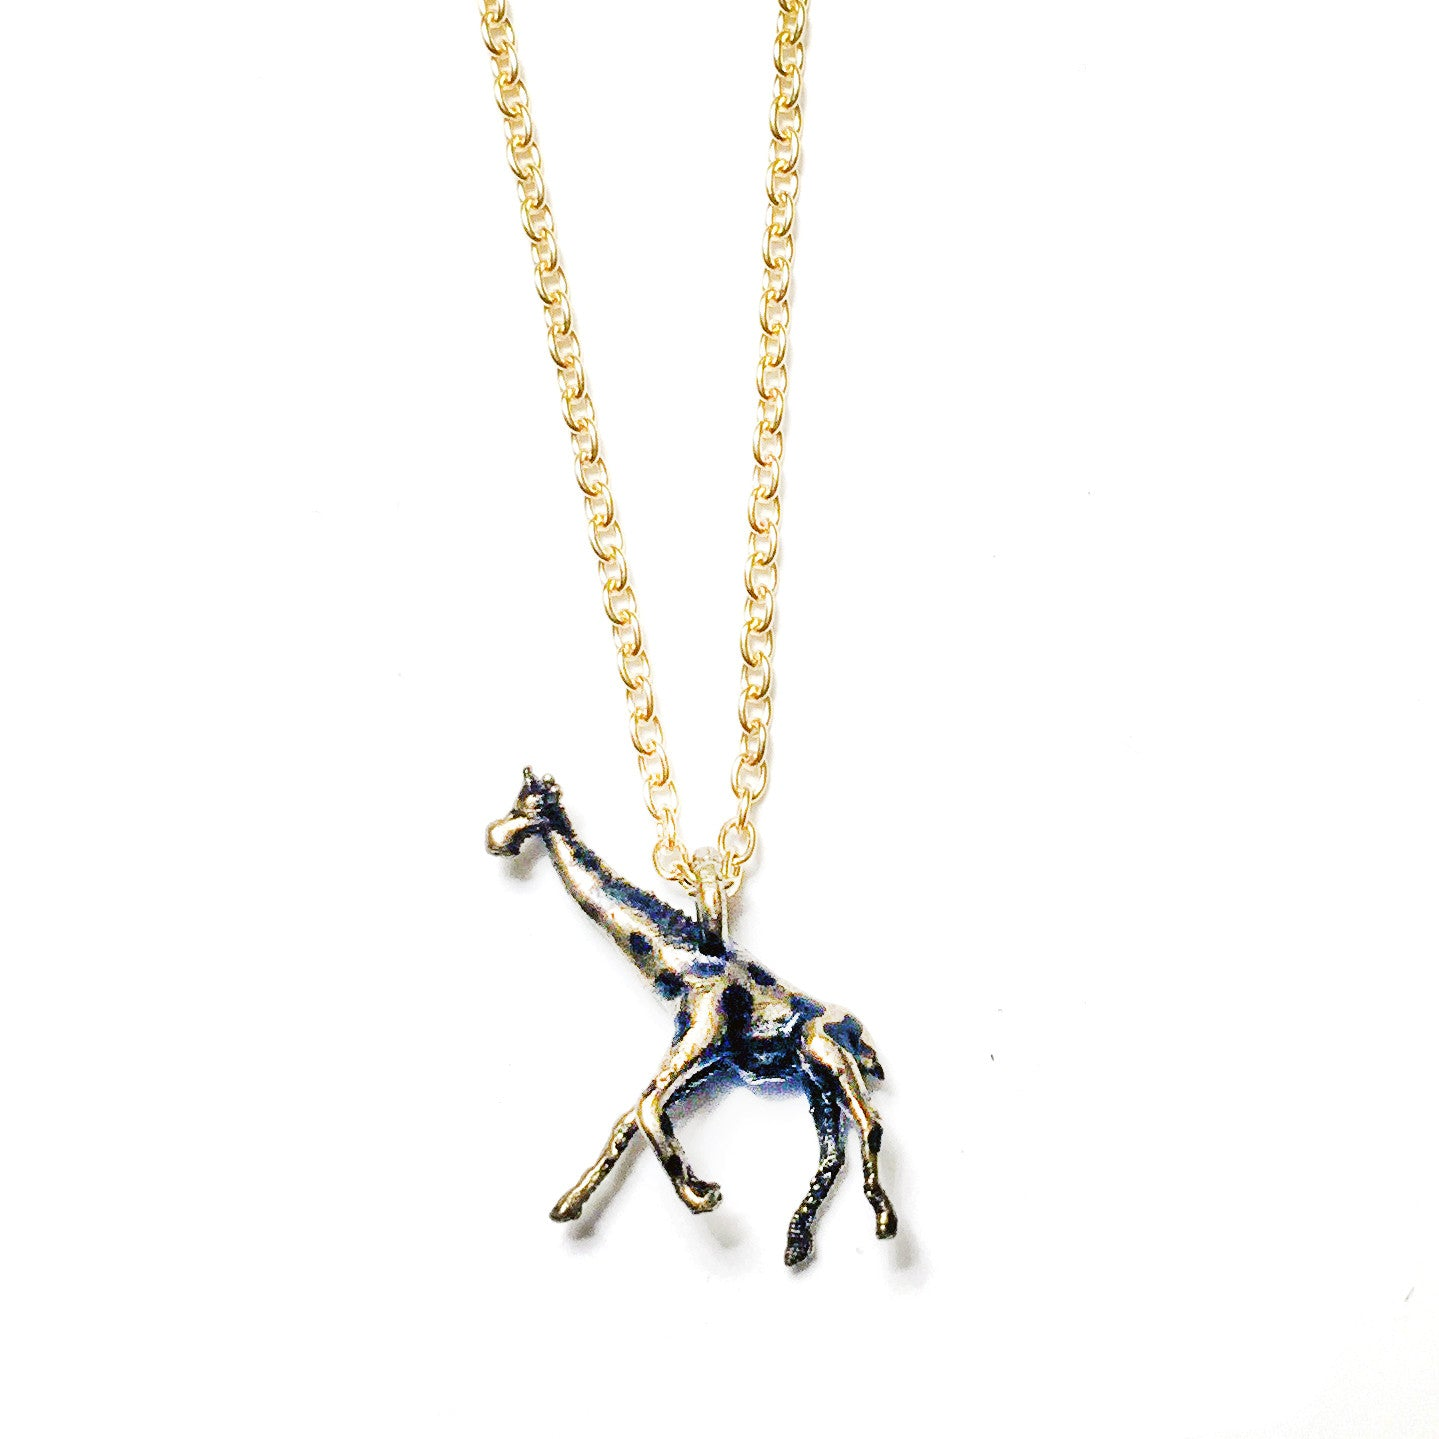 wikiwii necklace white crystal pendant giraffe products